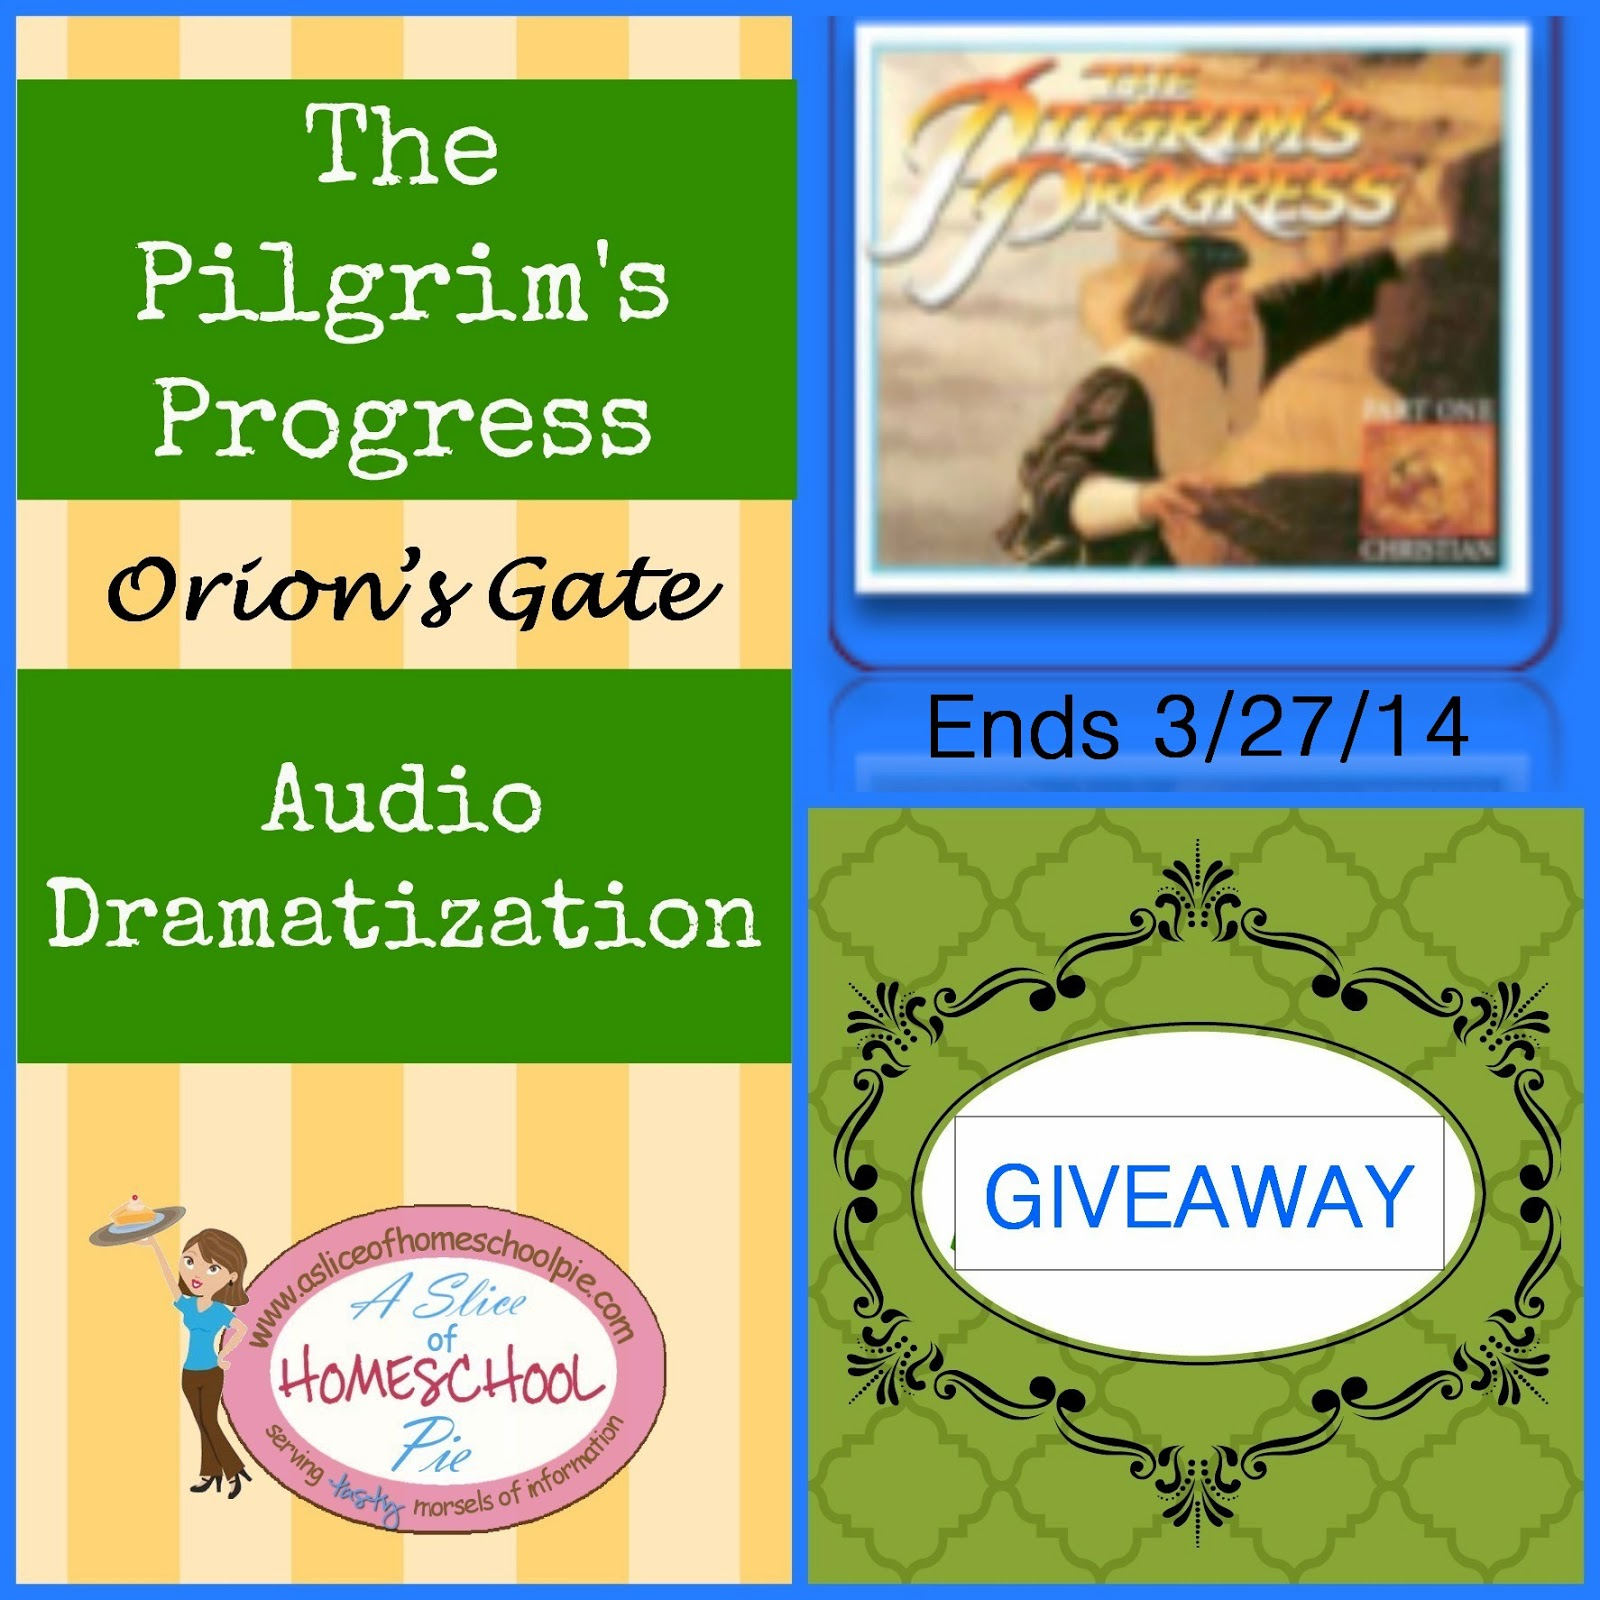 Giveaway-The-Pilgrims-Progress-Audio-Dramatization-Hosted-By-ASliceOfHomeschoolPie.com